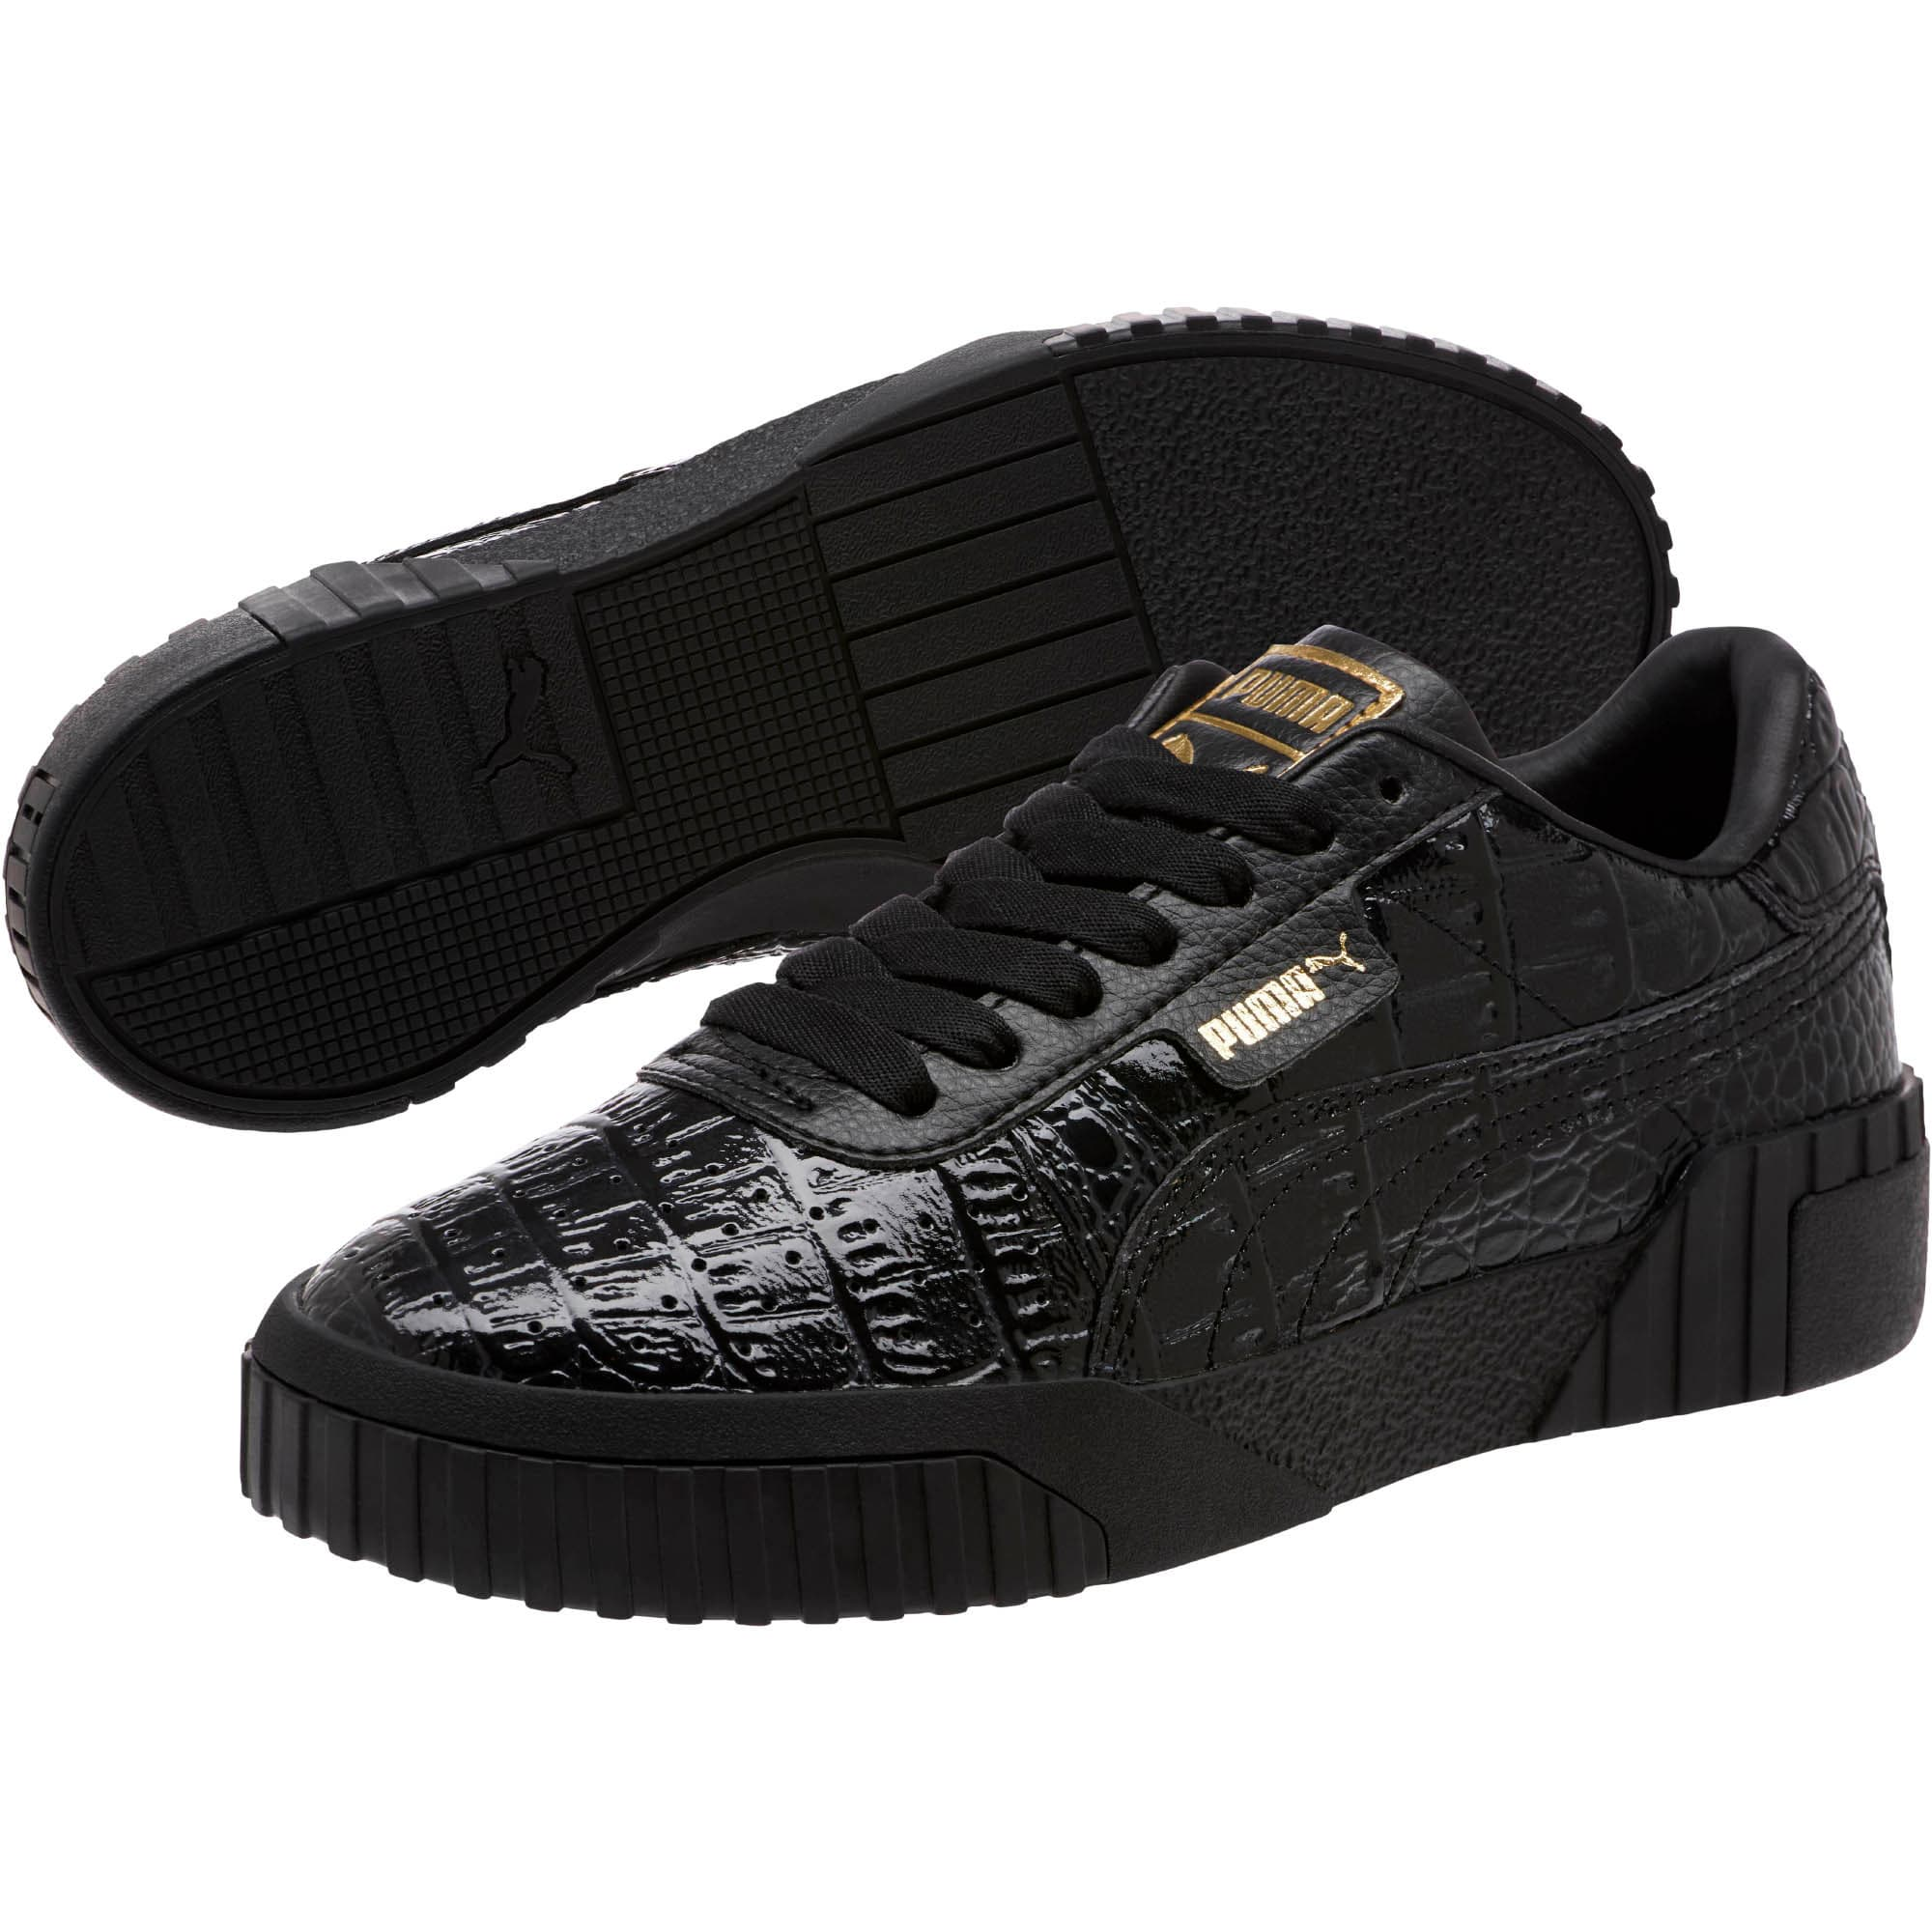 Thumbnail 2 of Cali Croc Women's Sneakers, Puma Black-Puma Black, medium